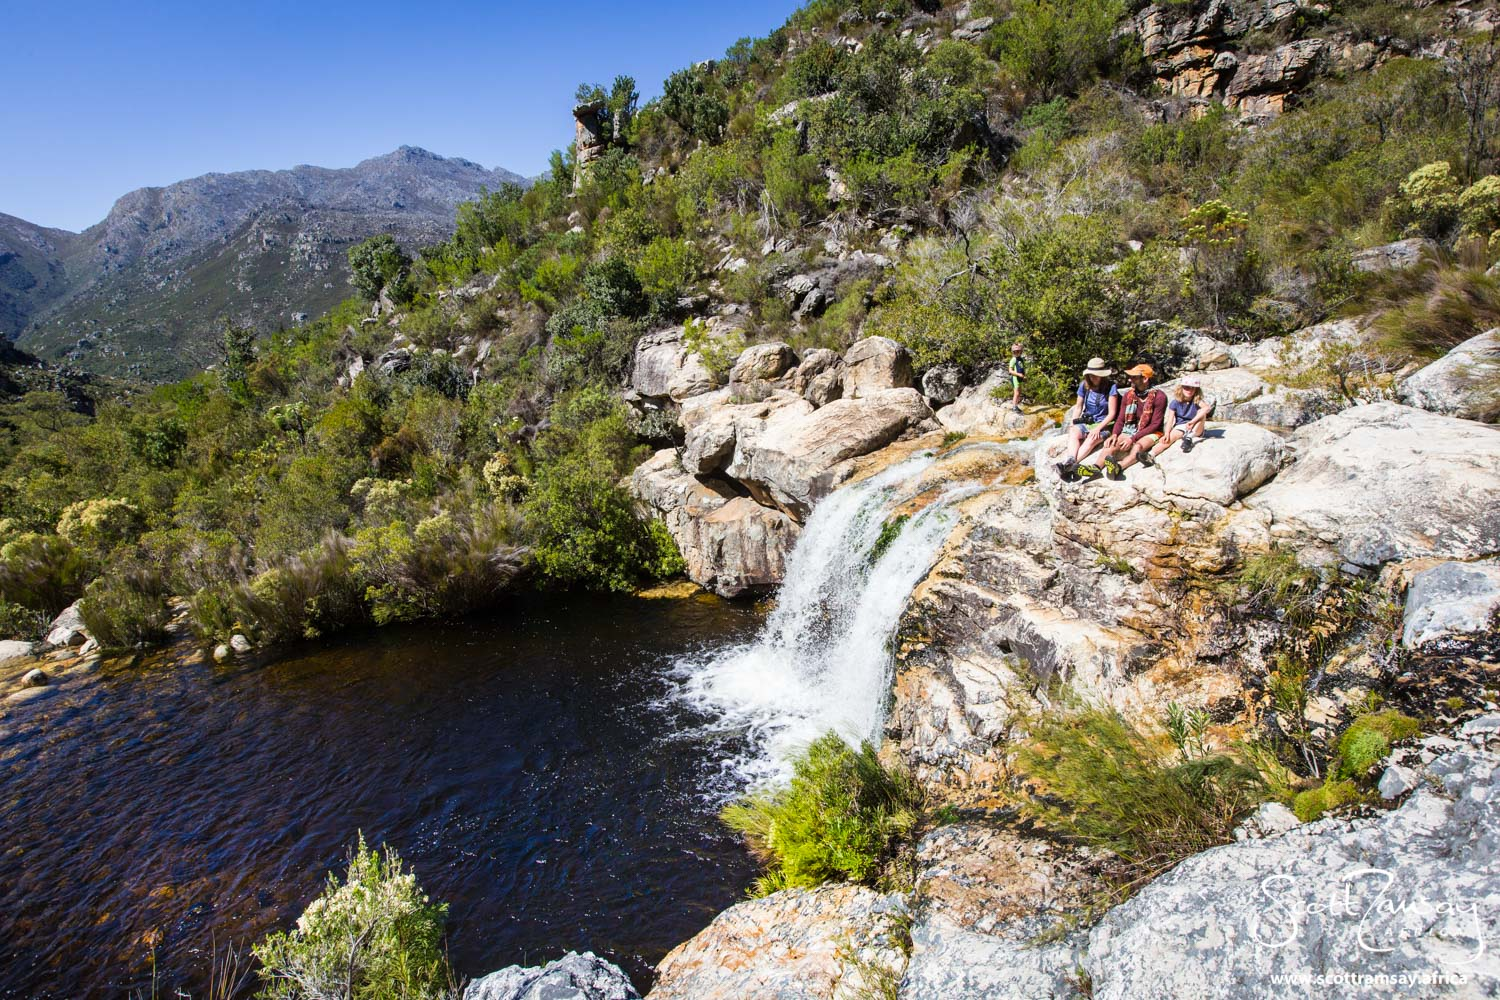 A few kilometres up from Tweede Tol campsite are several spectacular rock pools and waterfalls, easily accessed via a hiking path.